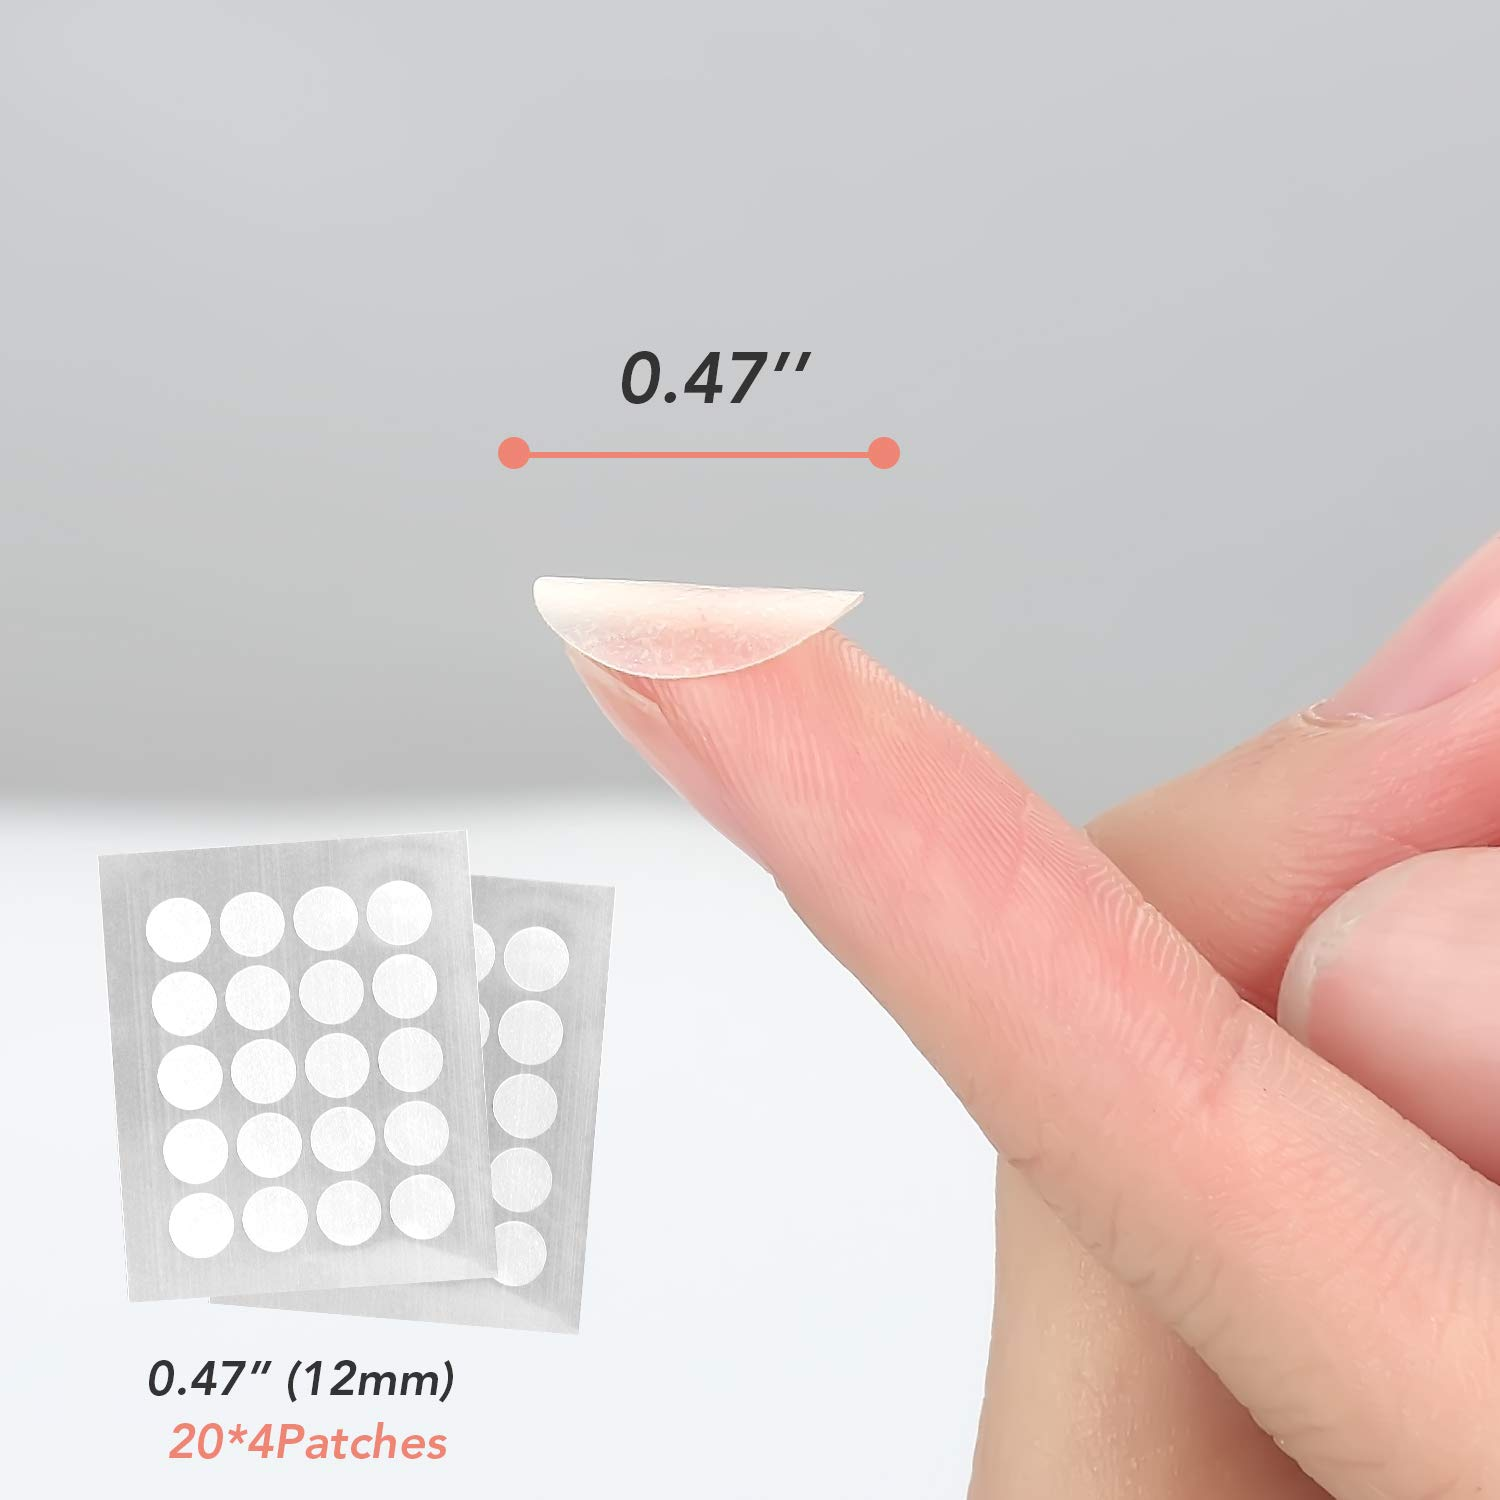 AUSLKA Acne Pimple Master Patch, Acne Spot Treatment, Hydrocolloid Acne Dots for Face(120 Patches), Tea Tree Oil, Facial Stickers, Zit Patches